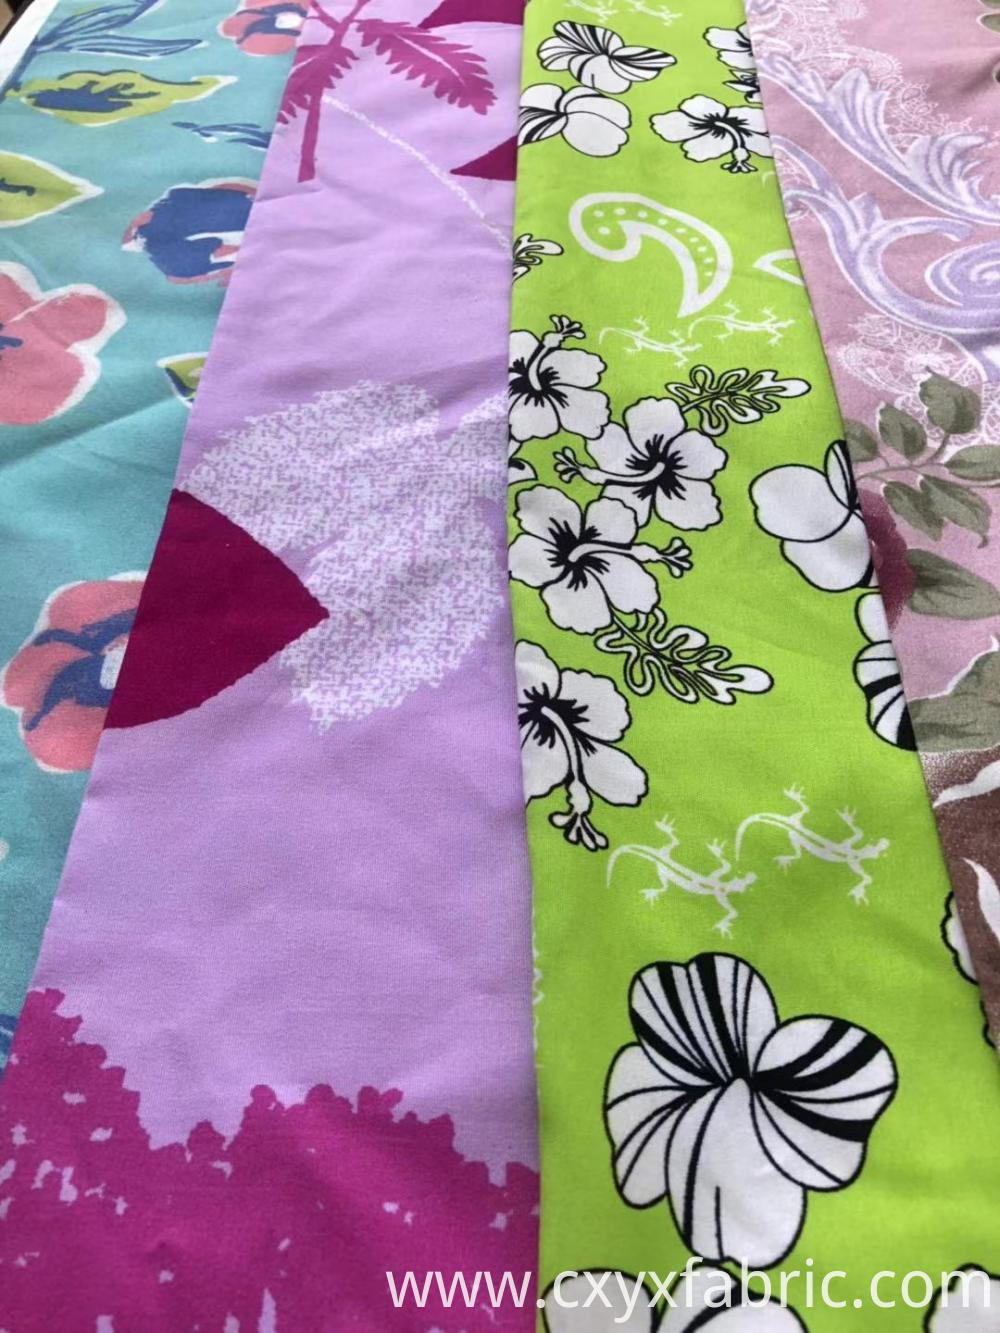 Polycotton Dyed Fabric